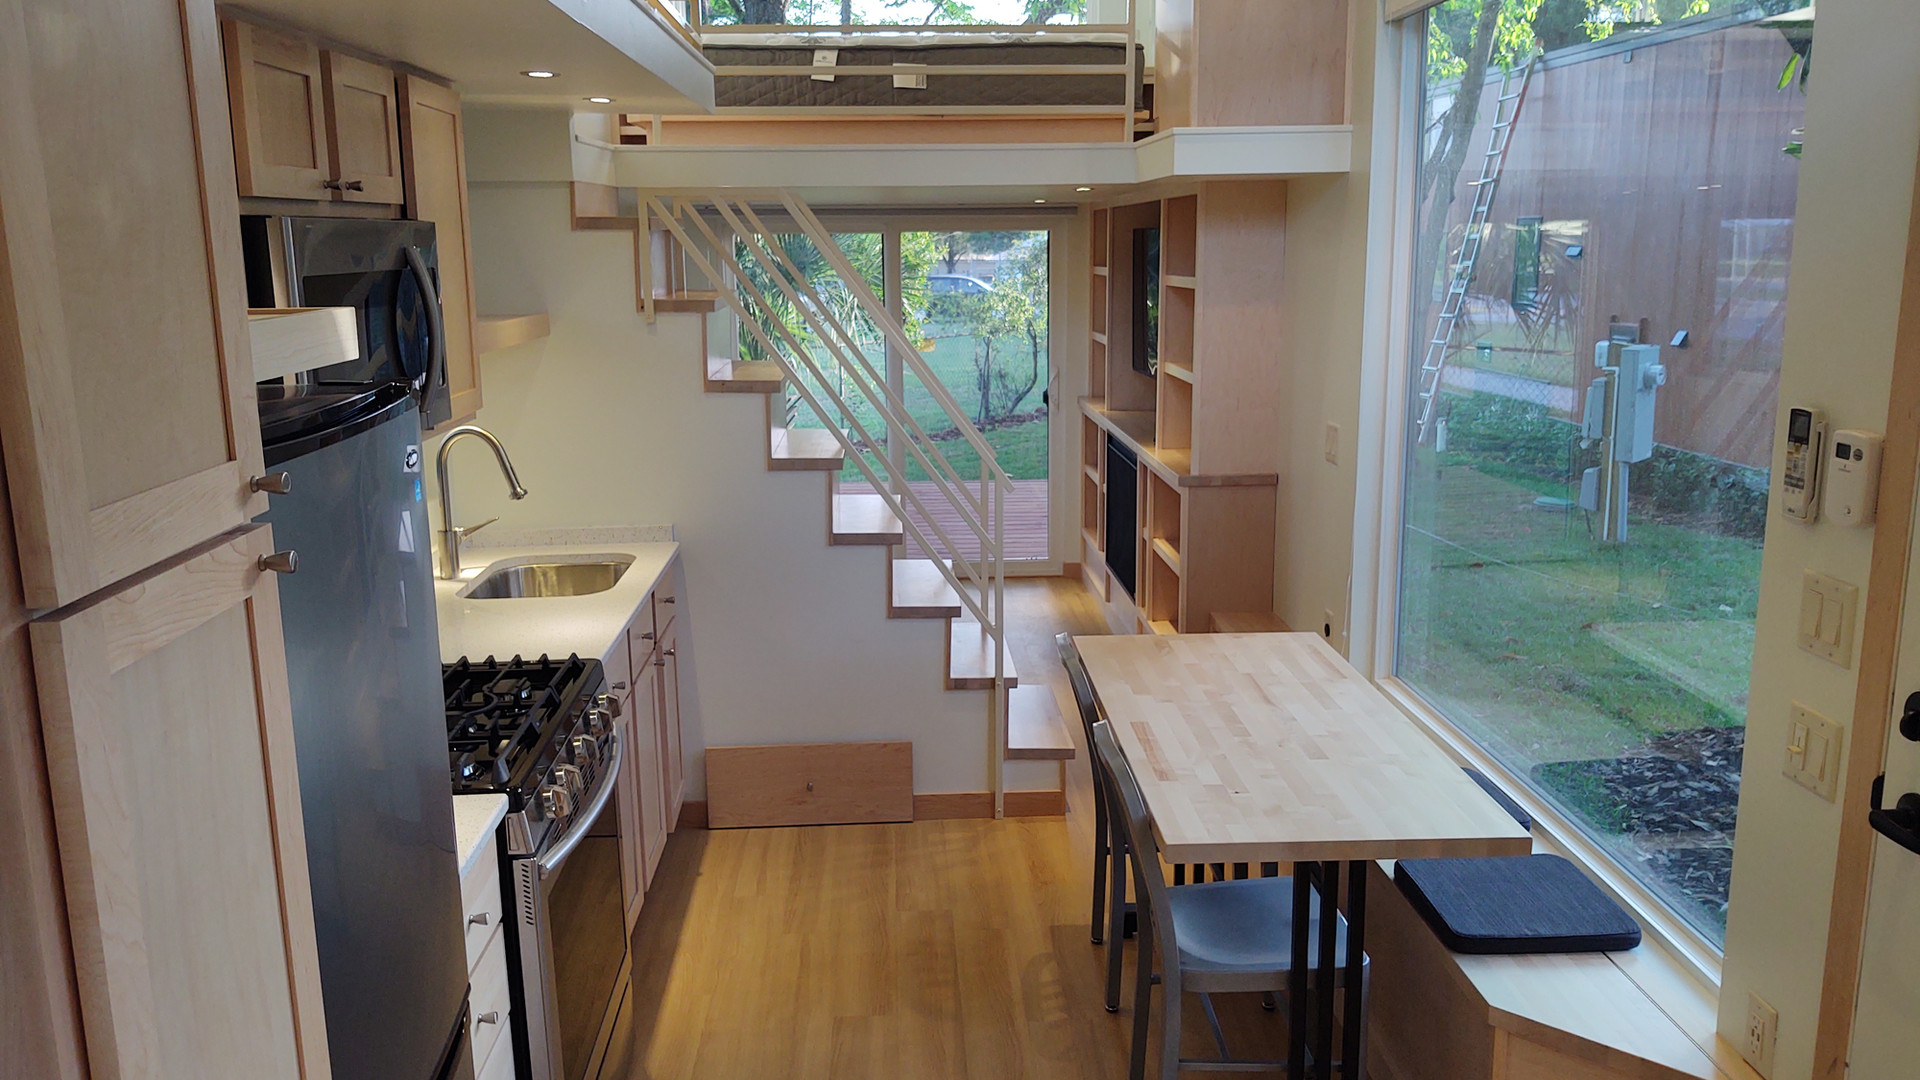 Central Staircase + Large Windows